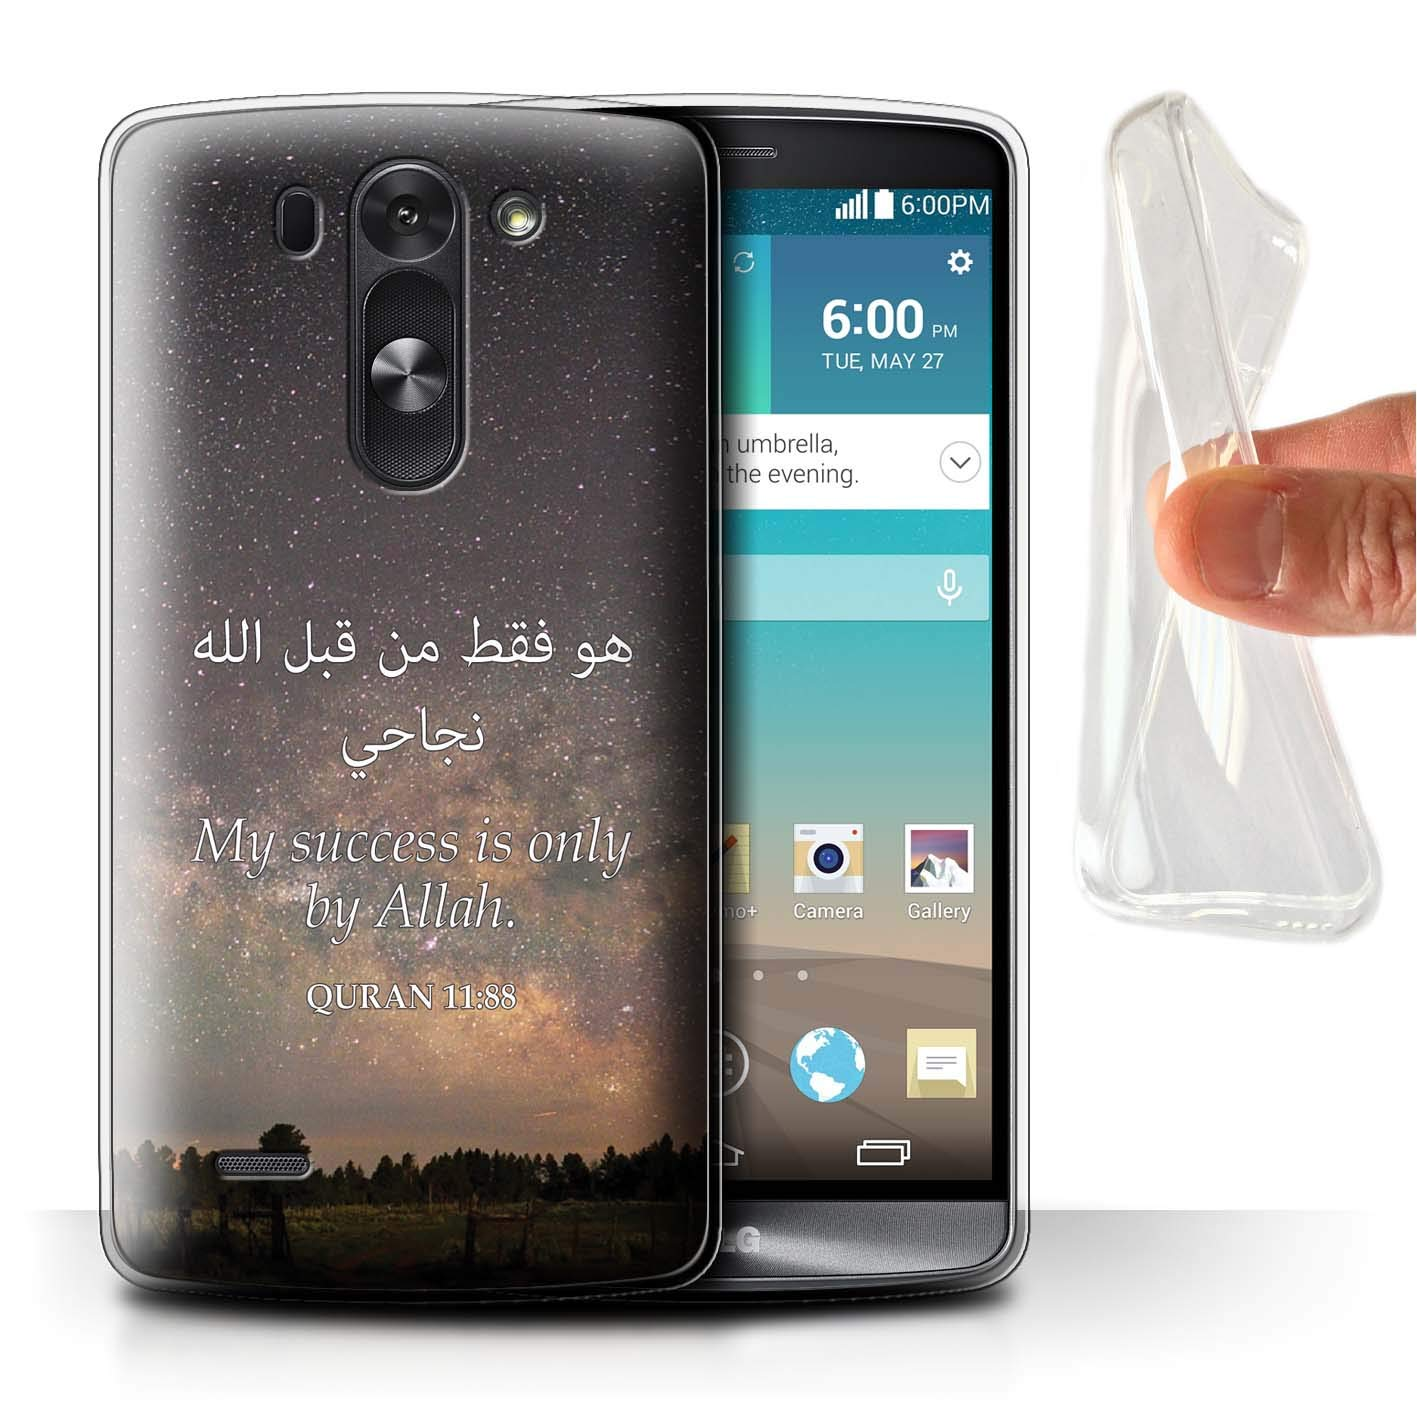 ad51c02570e Amazon.com: STUFF4 Gel TPU Phone Case/Cover LG G3 Mini S/D722 / Promise  Allah is Truth Design/Islam Quran Verse Collection: Cell Phones &  Accessories